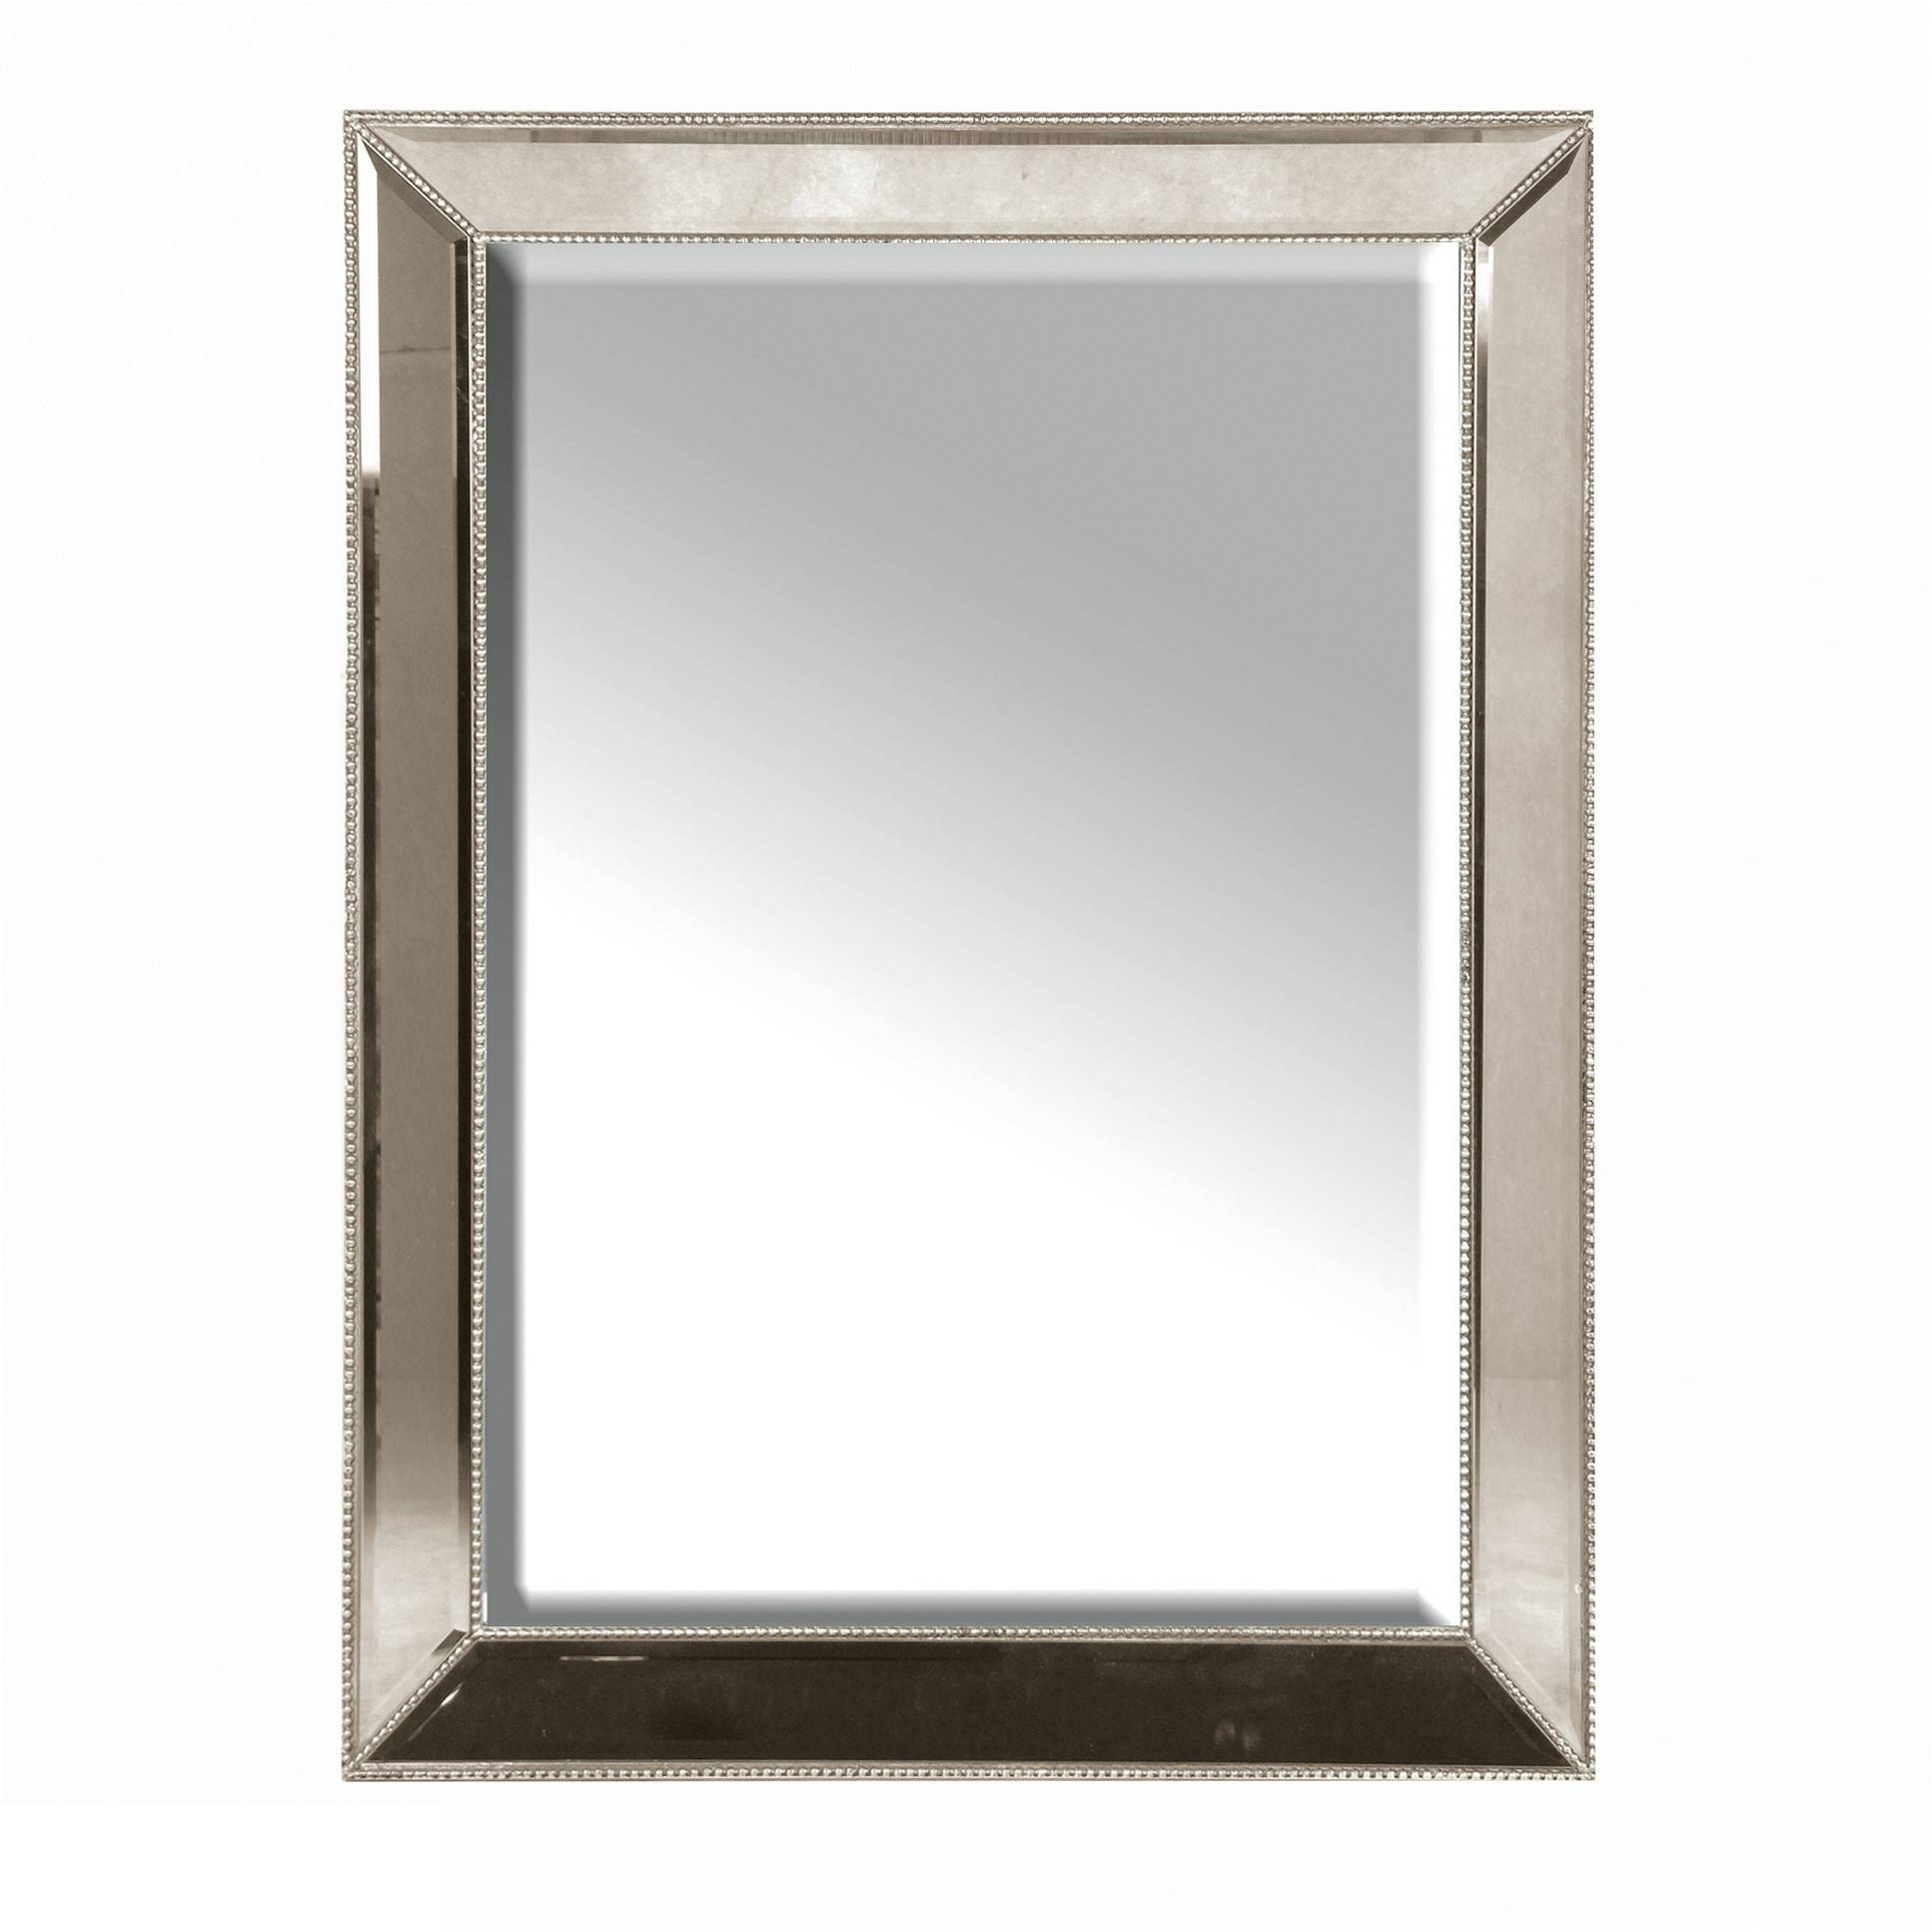 Venetian Mirror With Stud Frame For Square Venetian Mirrors (View 23 of 25)